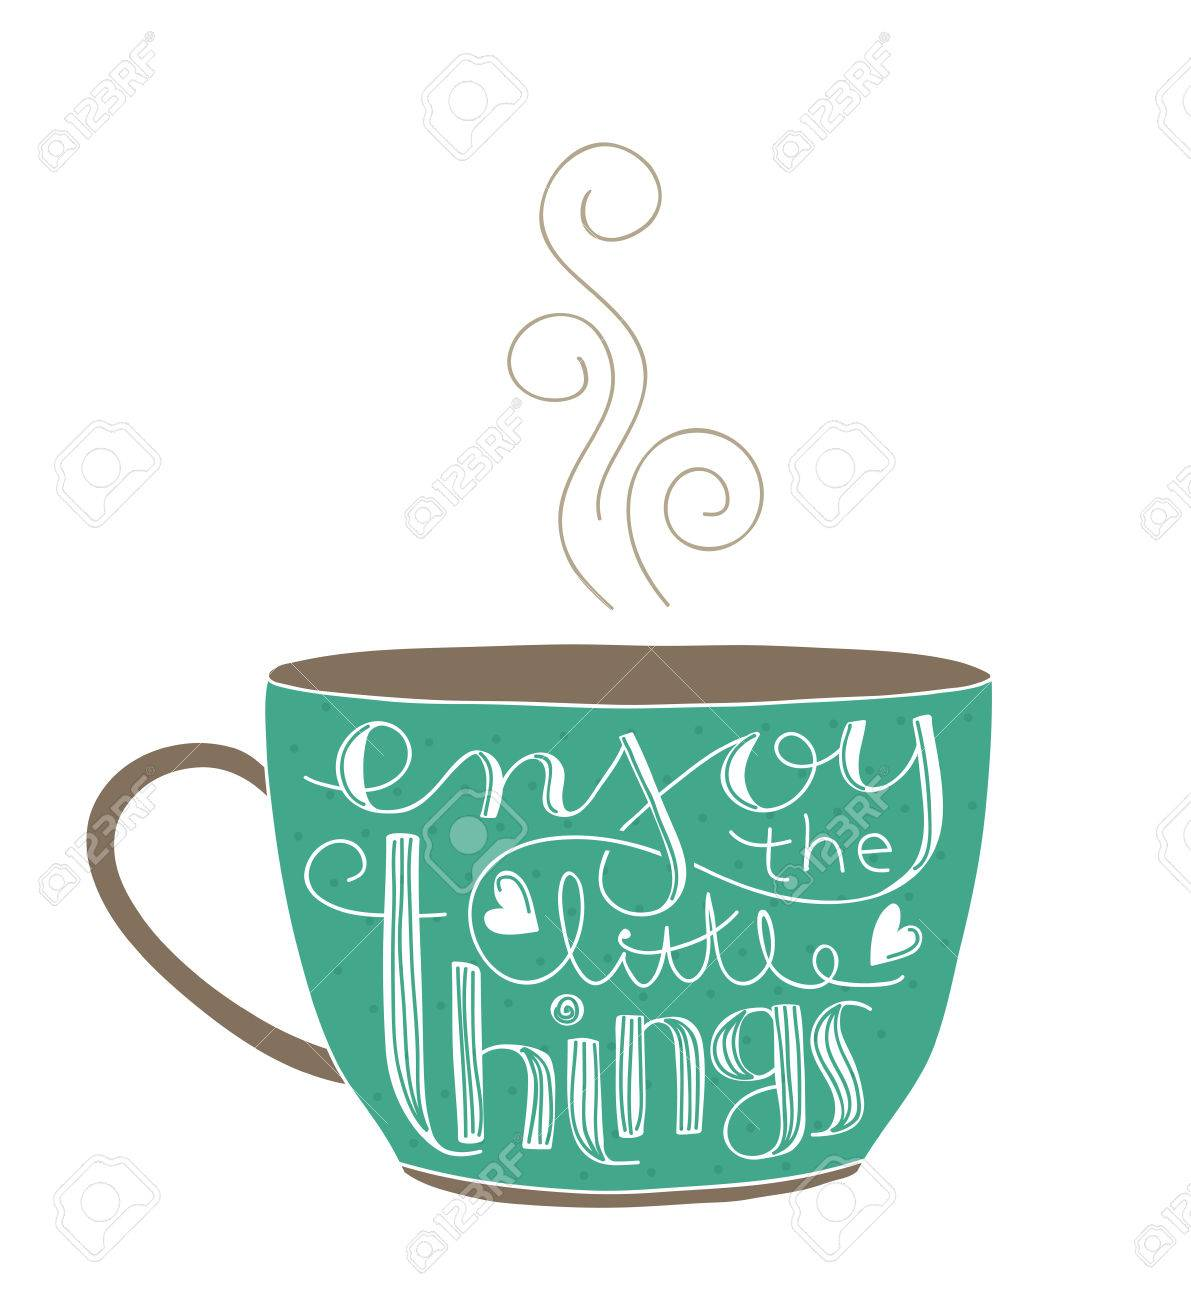 Cute Coffee Or Tea Cup With Inspirational Quote Enjoy The Little Things  Stock Vector   69918958